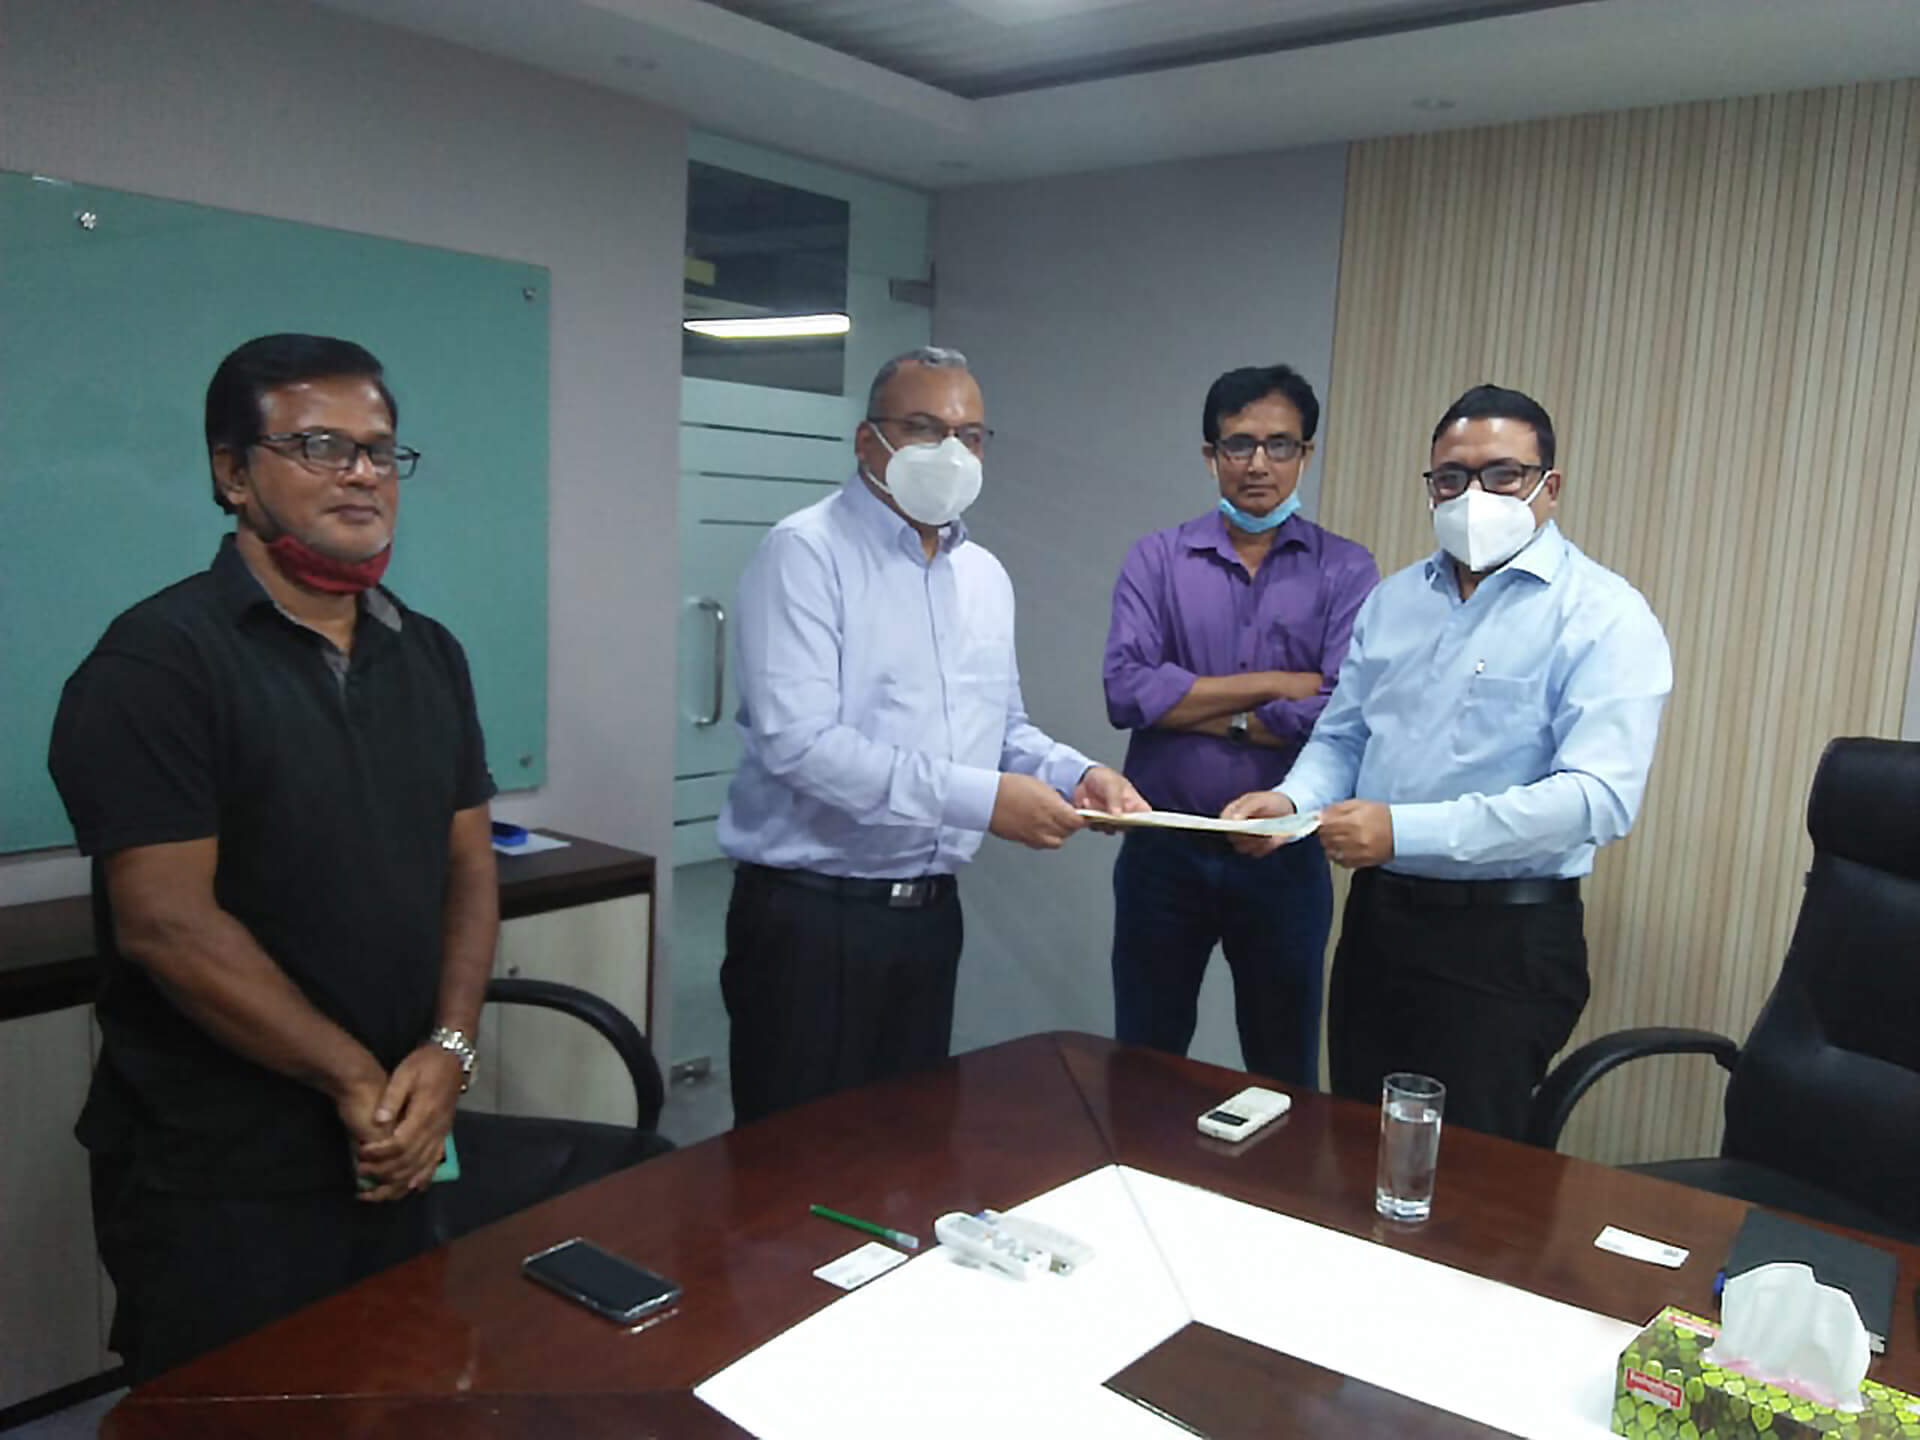 JAT Holdings to reap benefits of manufacturing in Bangladesh ahead of schedule